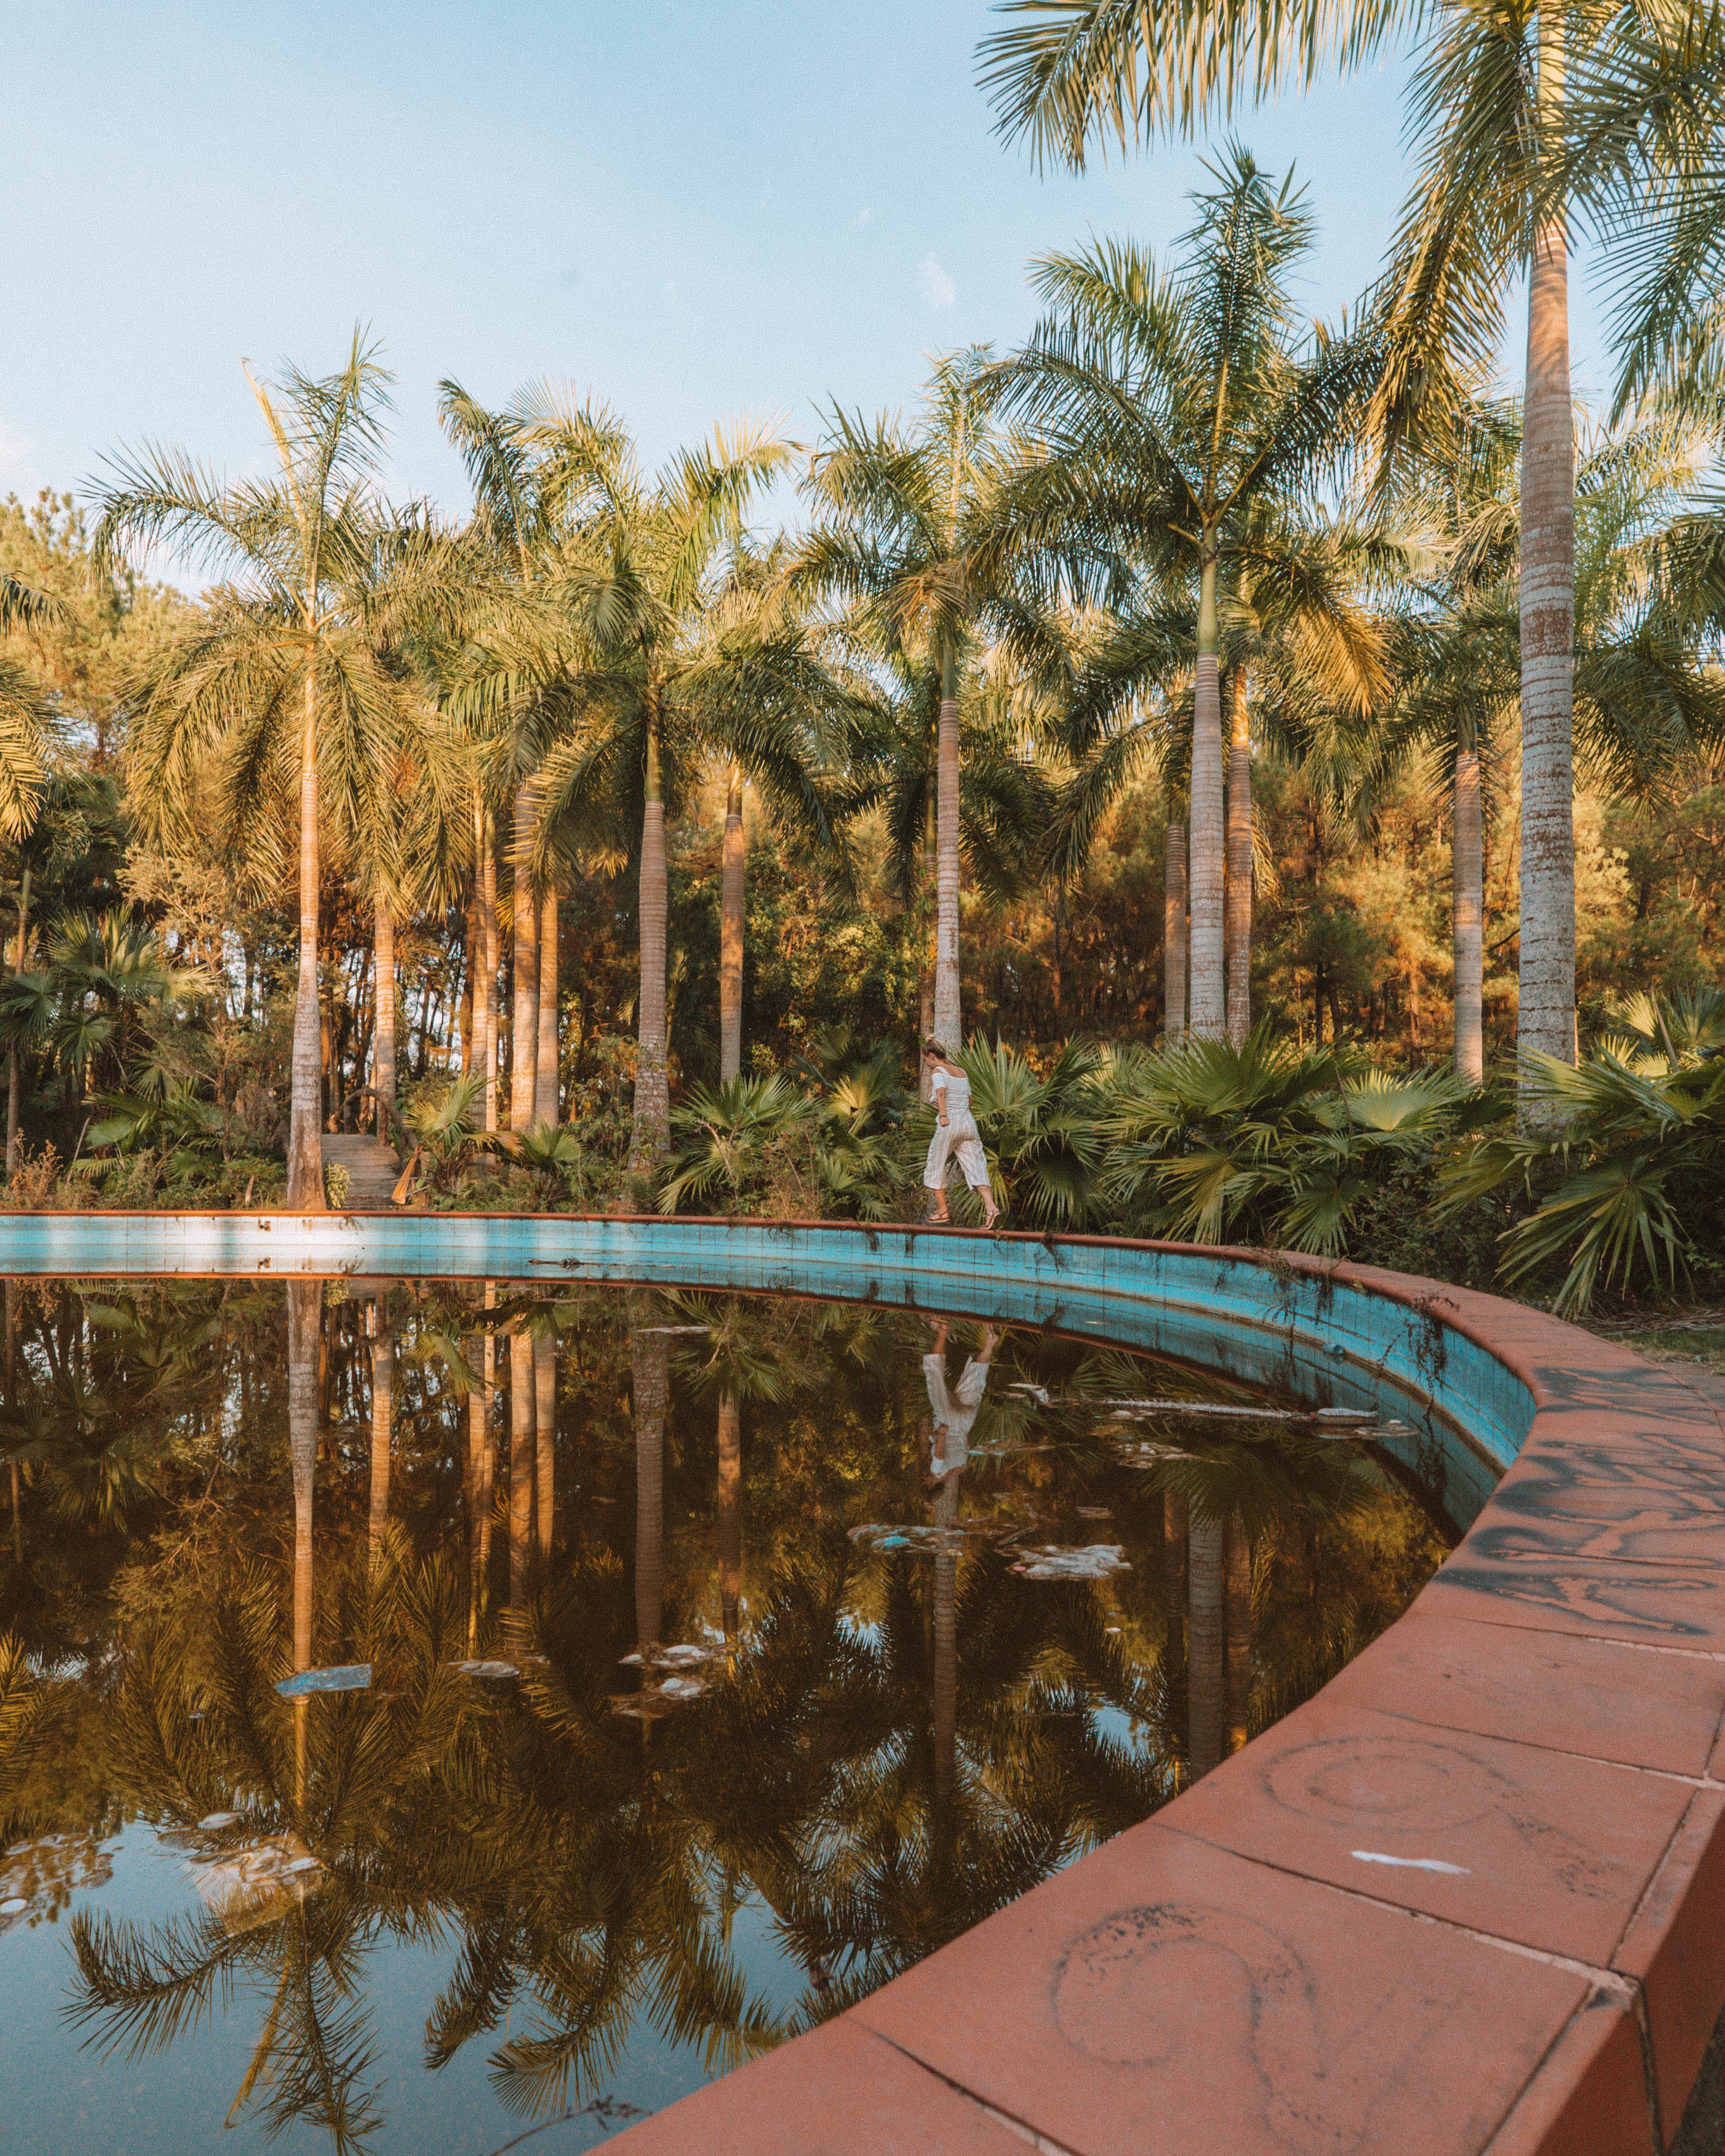 How to Find the Abandoned Waterpark in Hue dragon statue thuy tien lake Vietnam